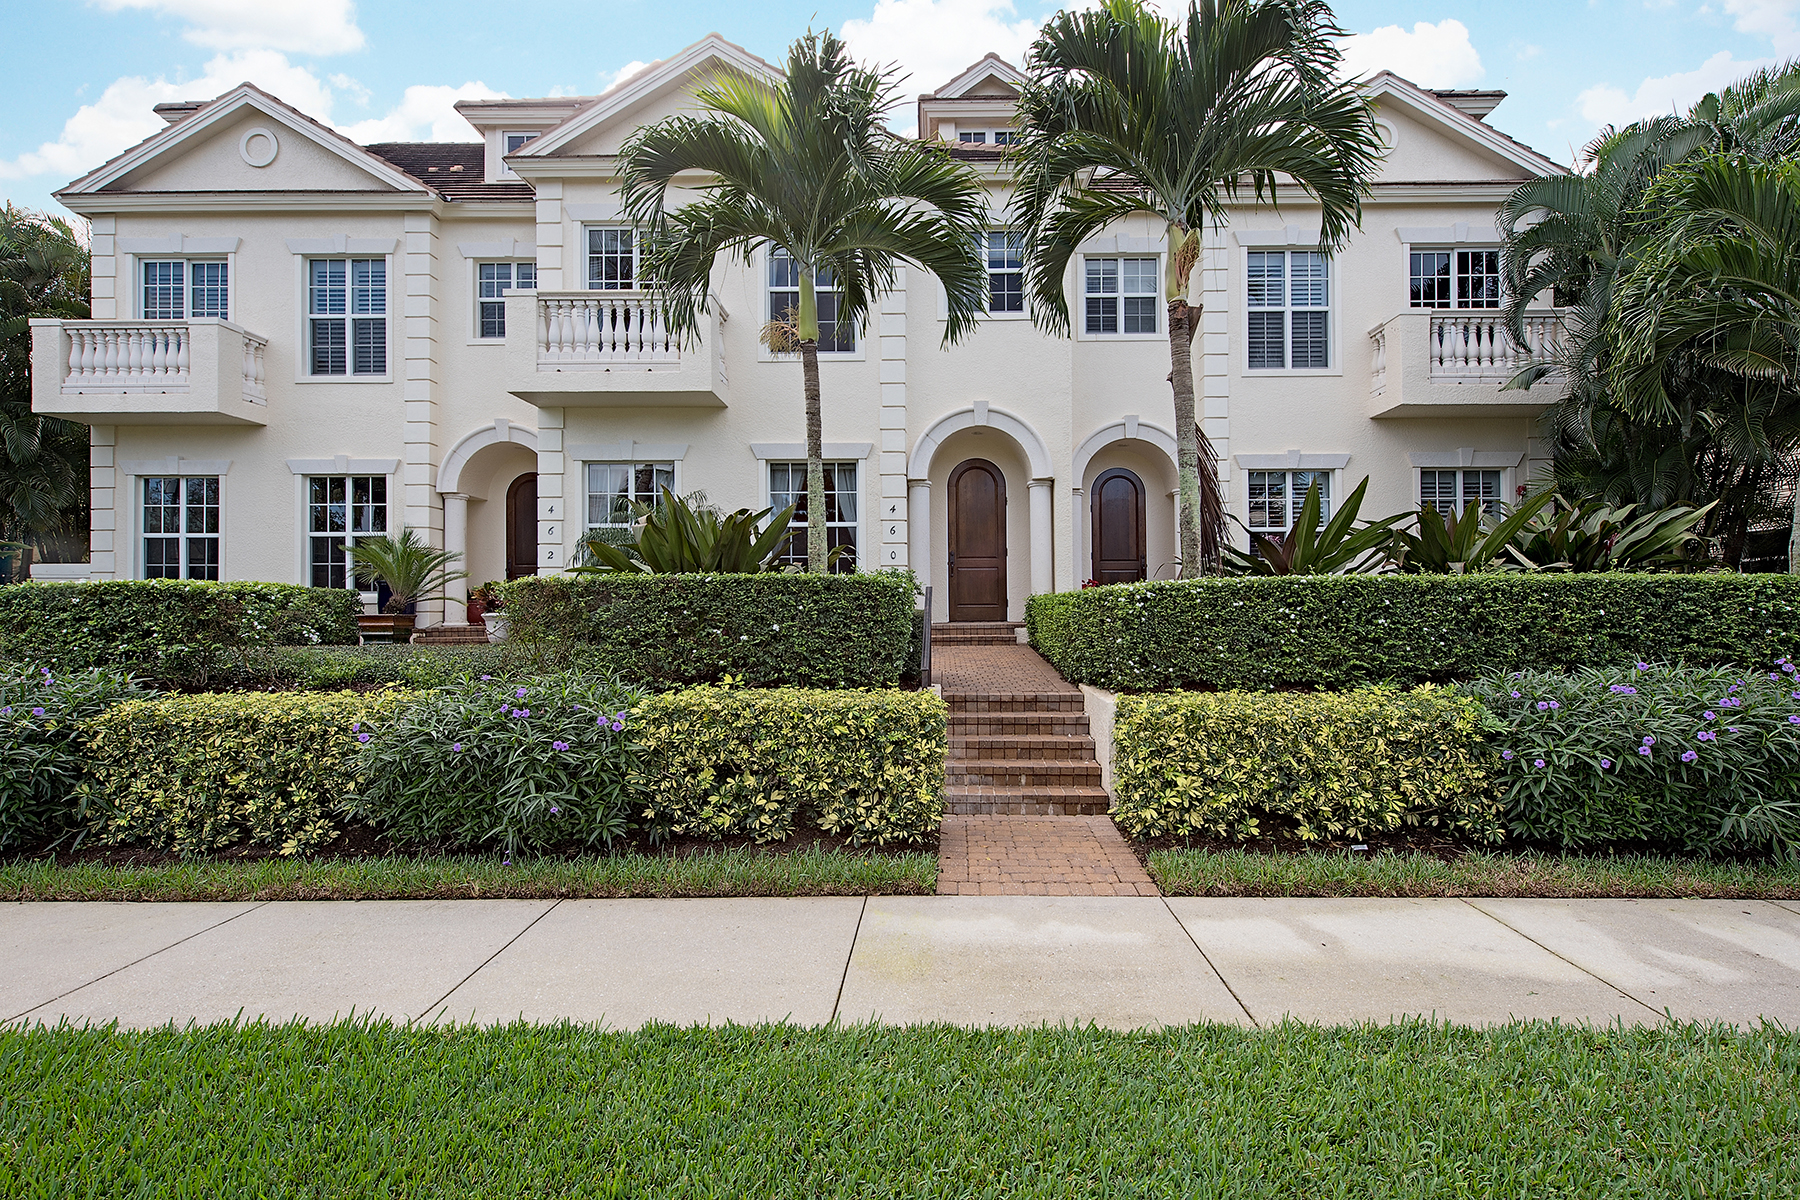 Single Family Home for Sale at OLDE NAPLES - CASA BELLA 460 11th Ave S 2 Naples, Florida, 34102 United States